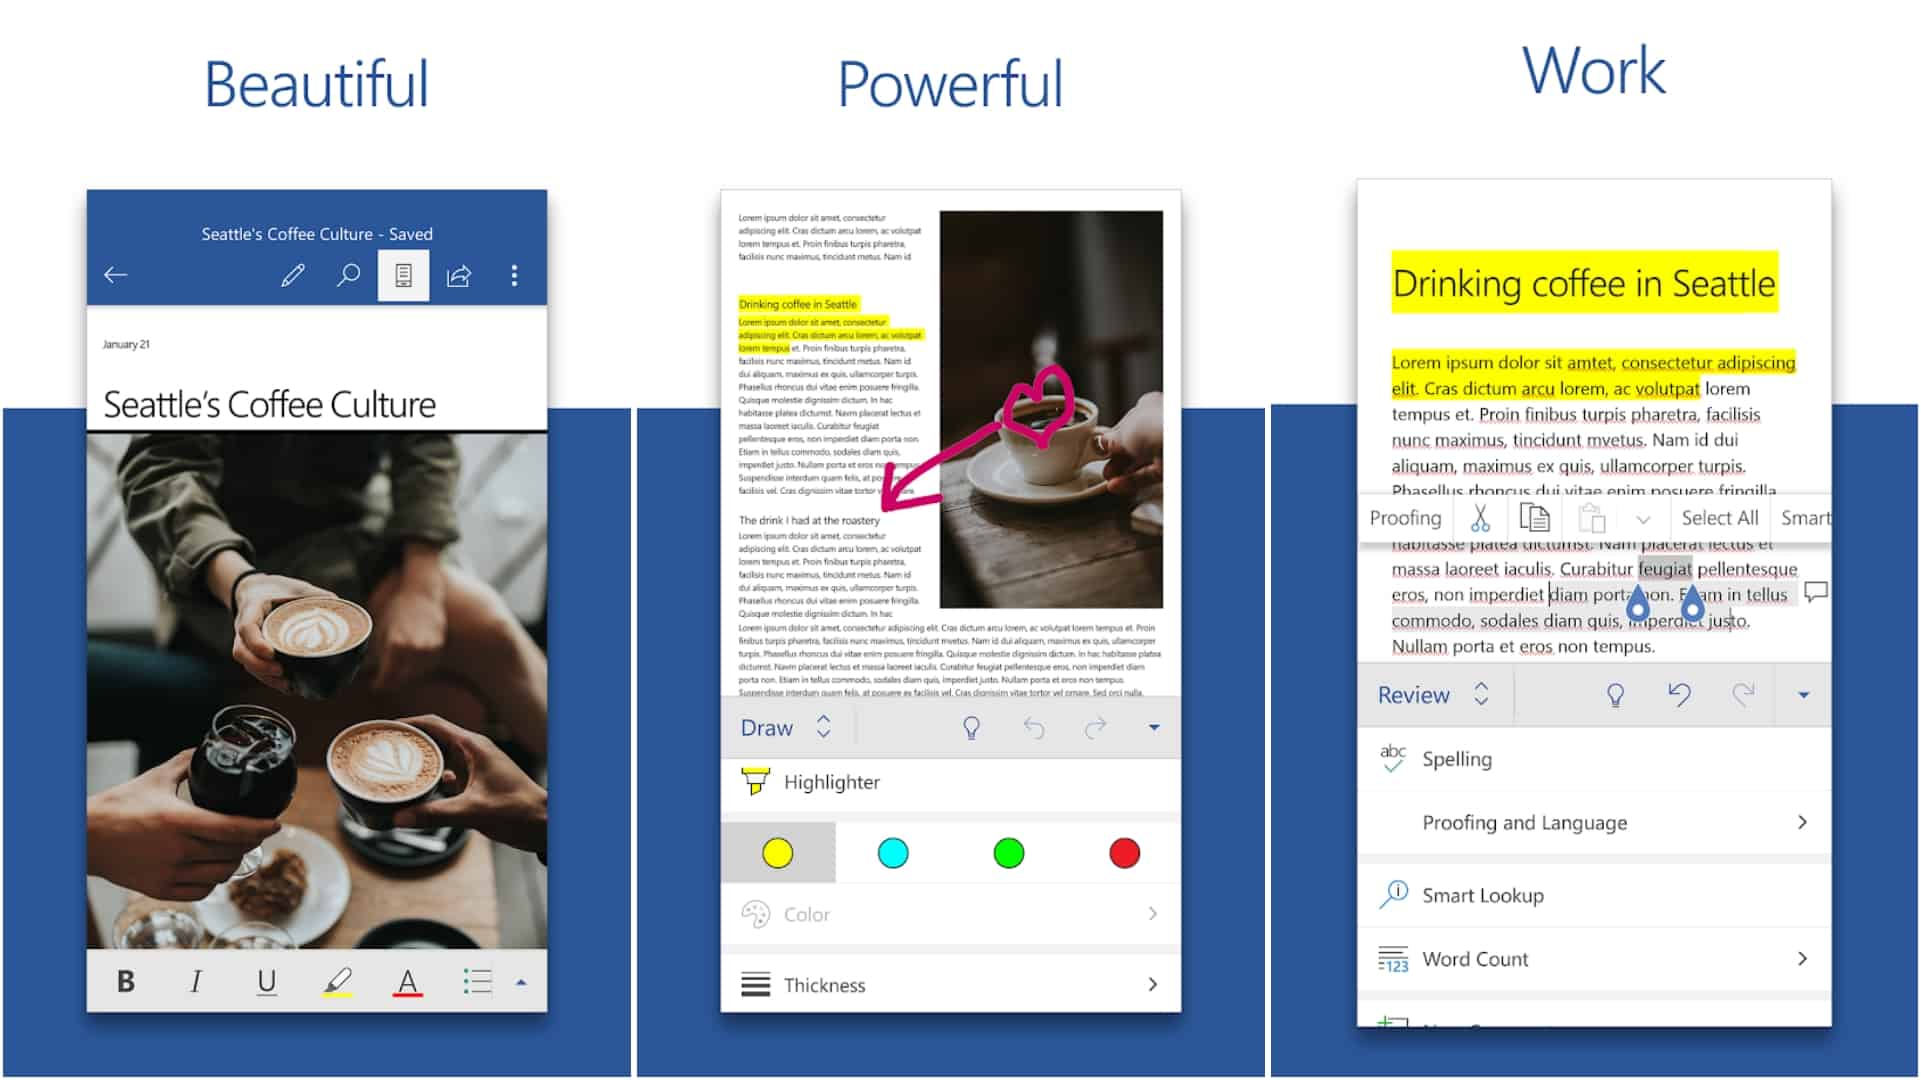 Microsoft Word app image June 2020